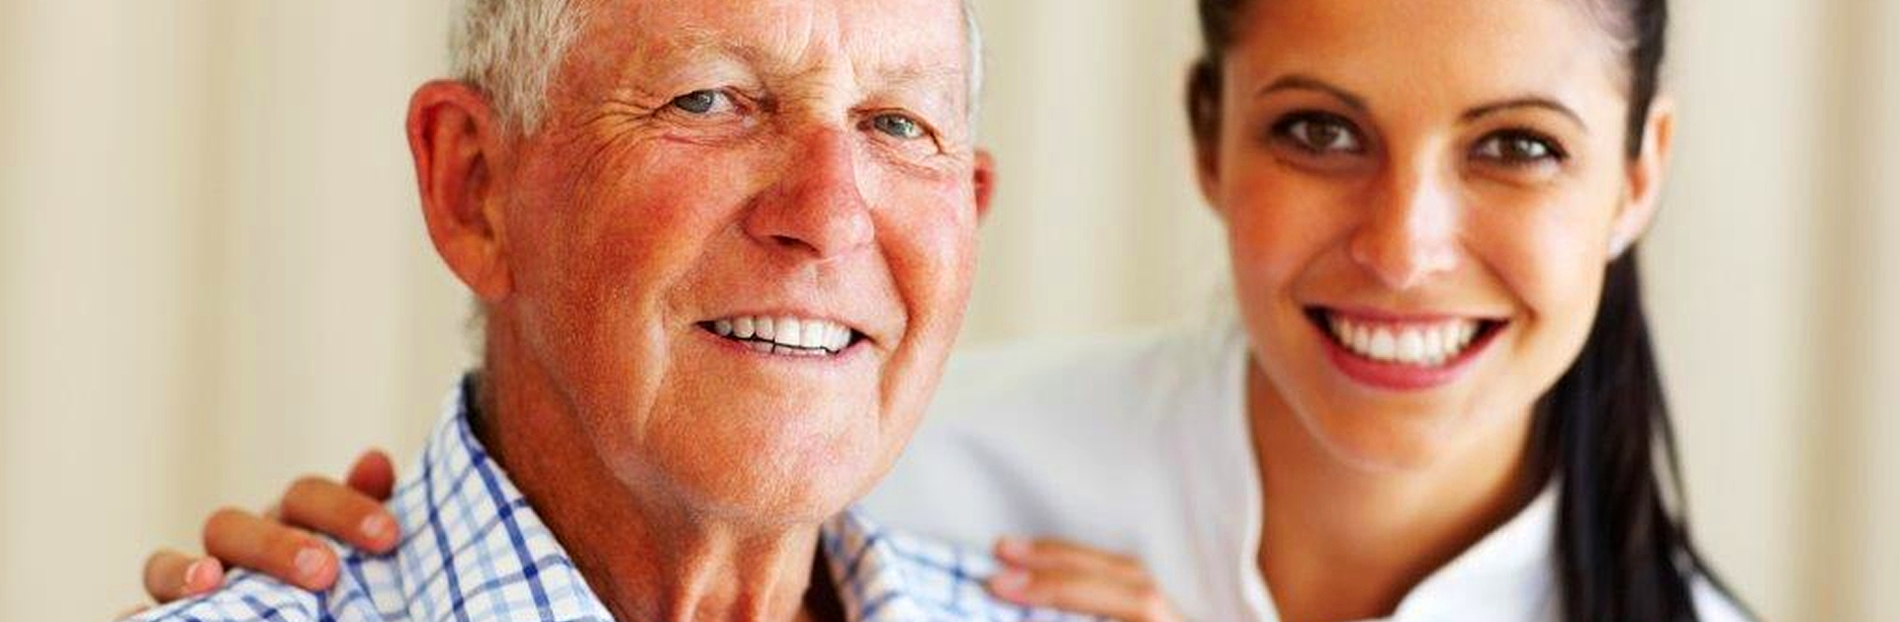 Aged Care Homes In Melbourne